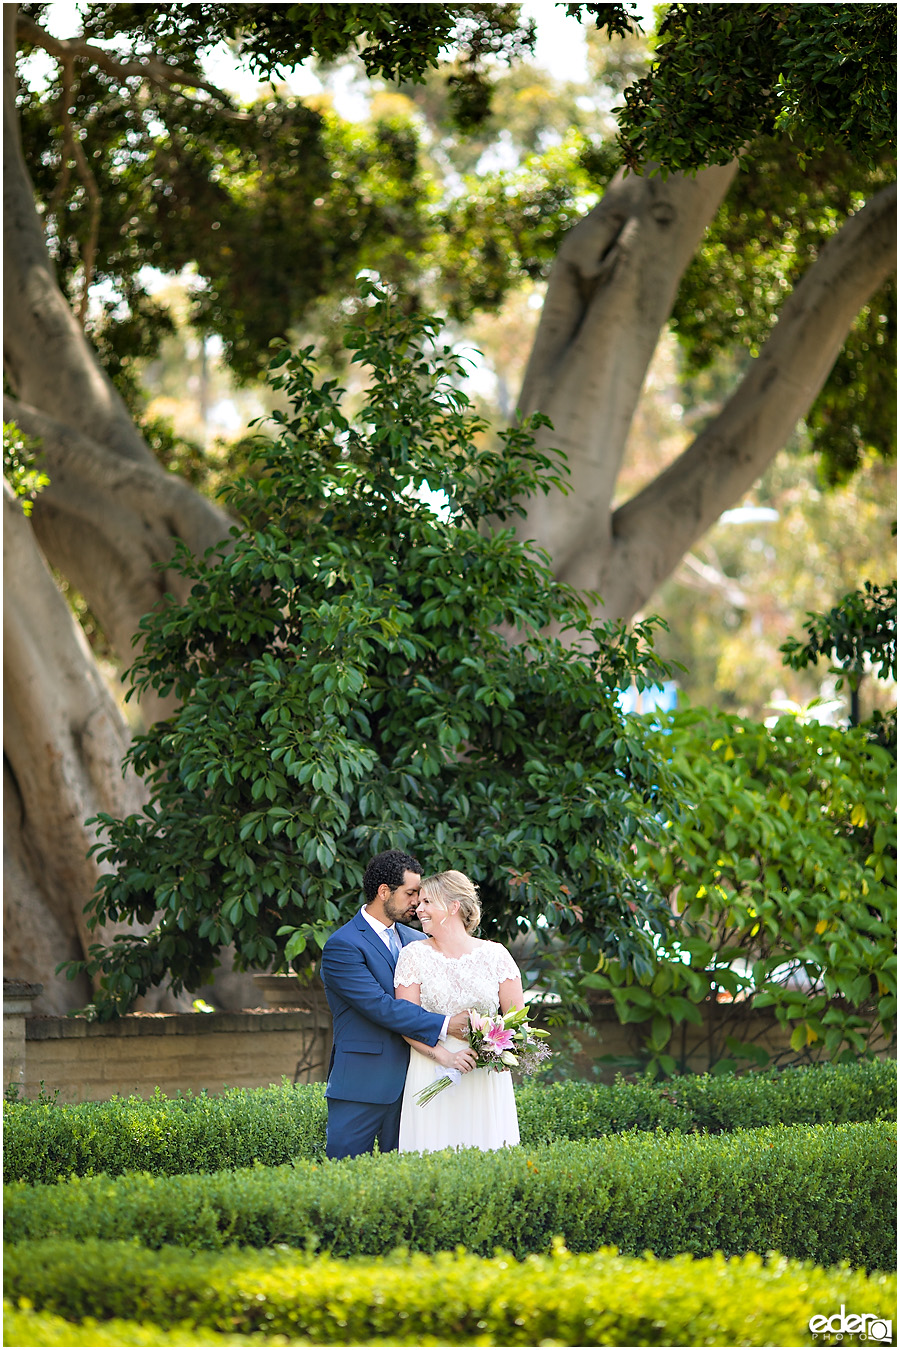 San Diego Elopement couple portrait in a garden.